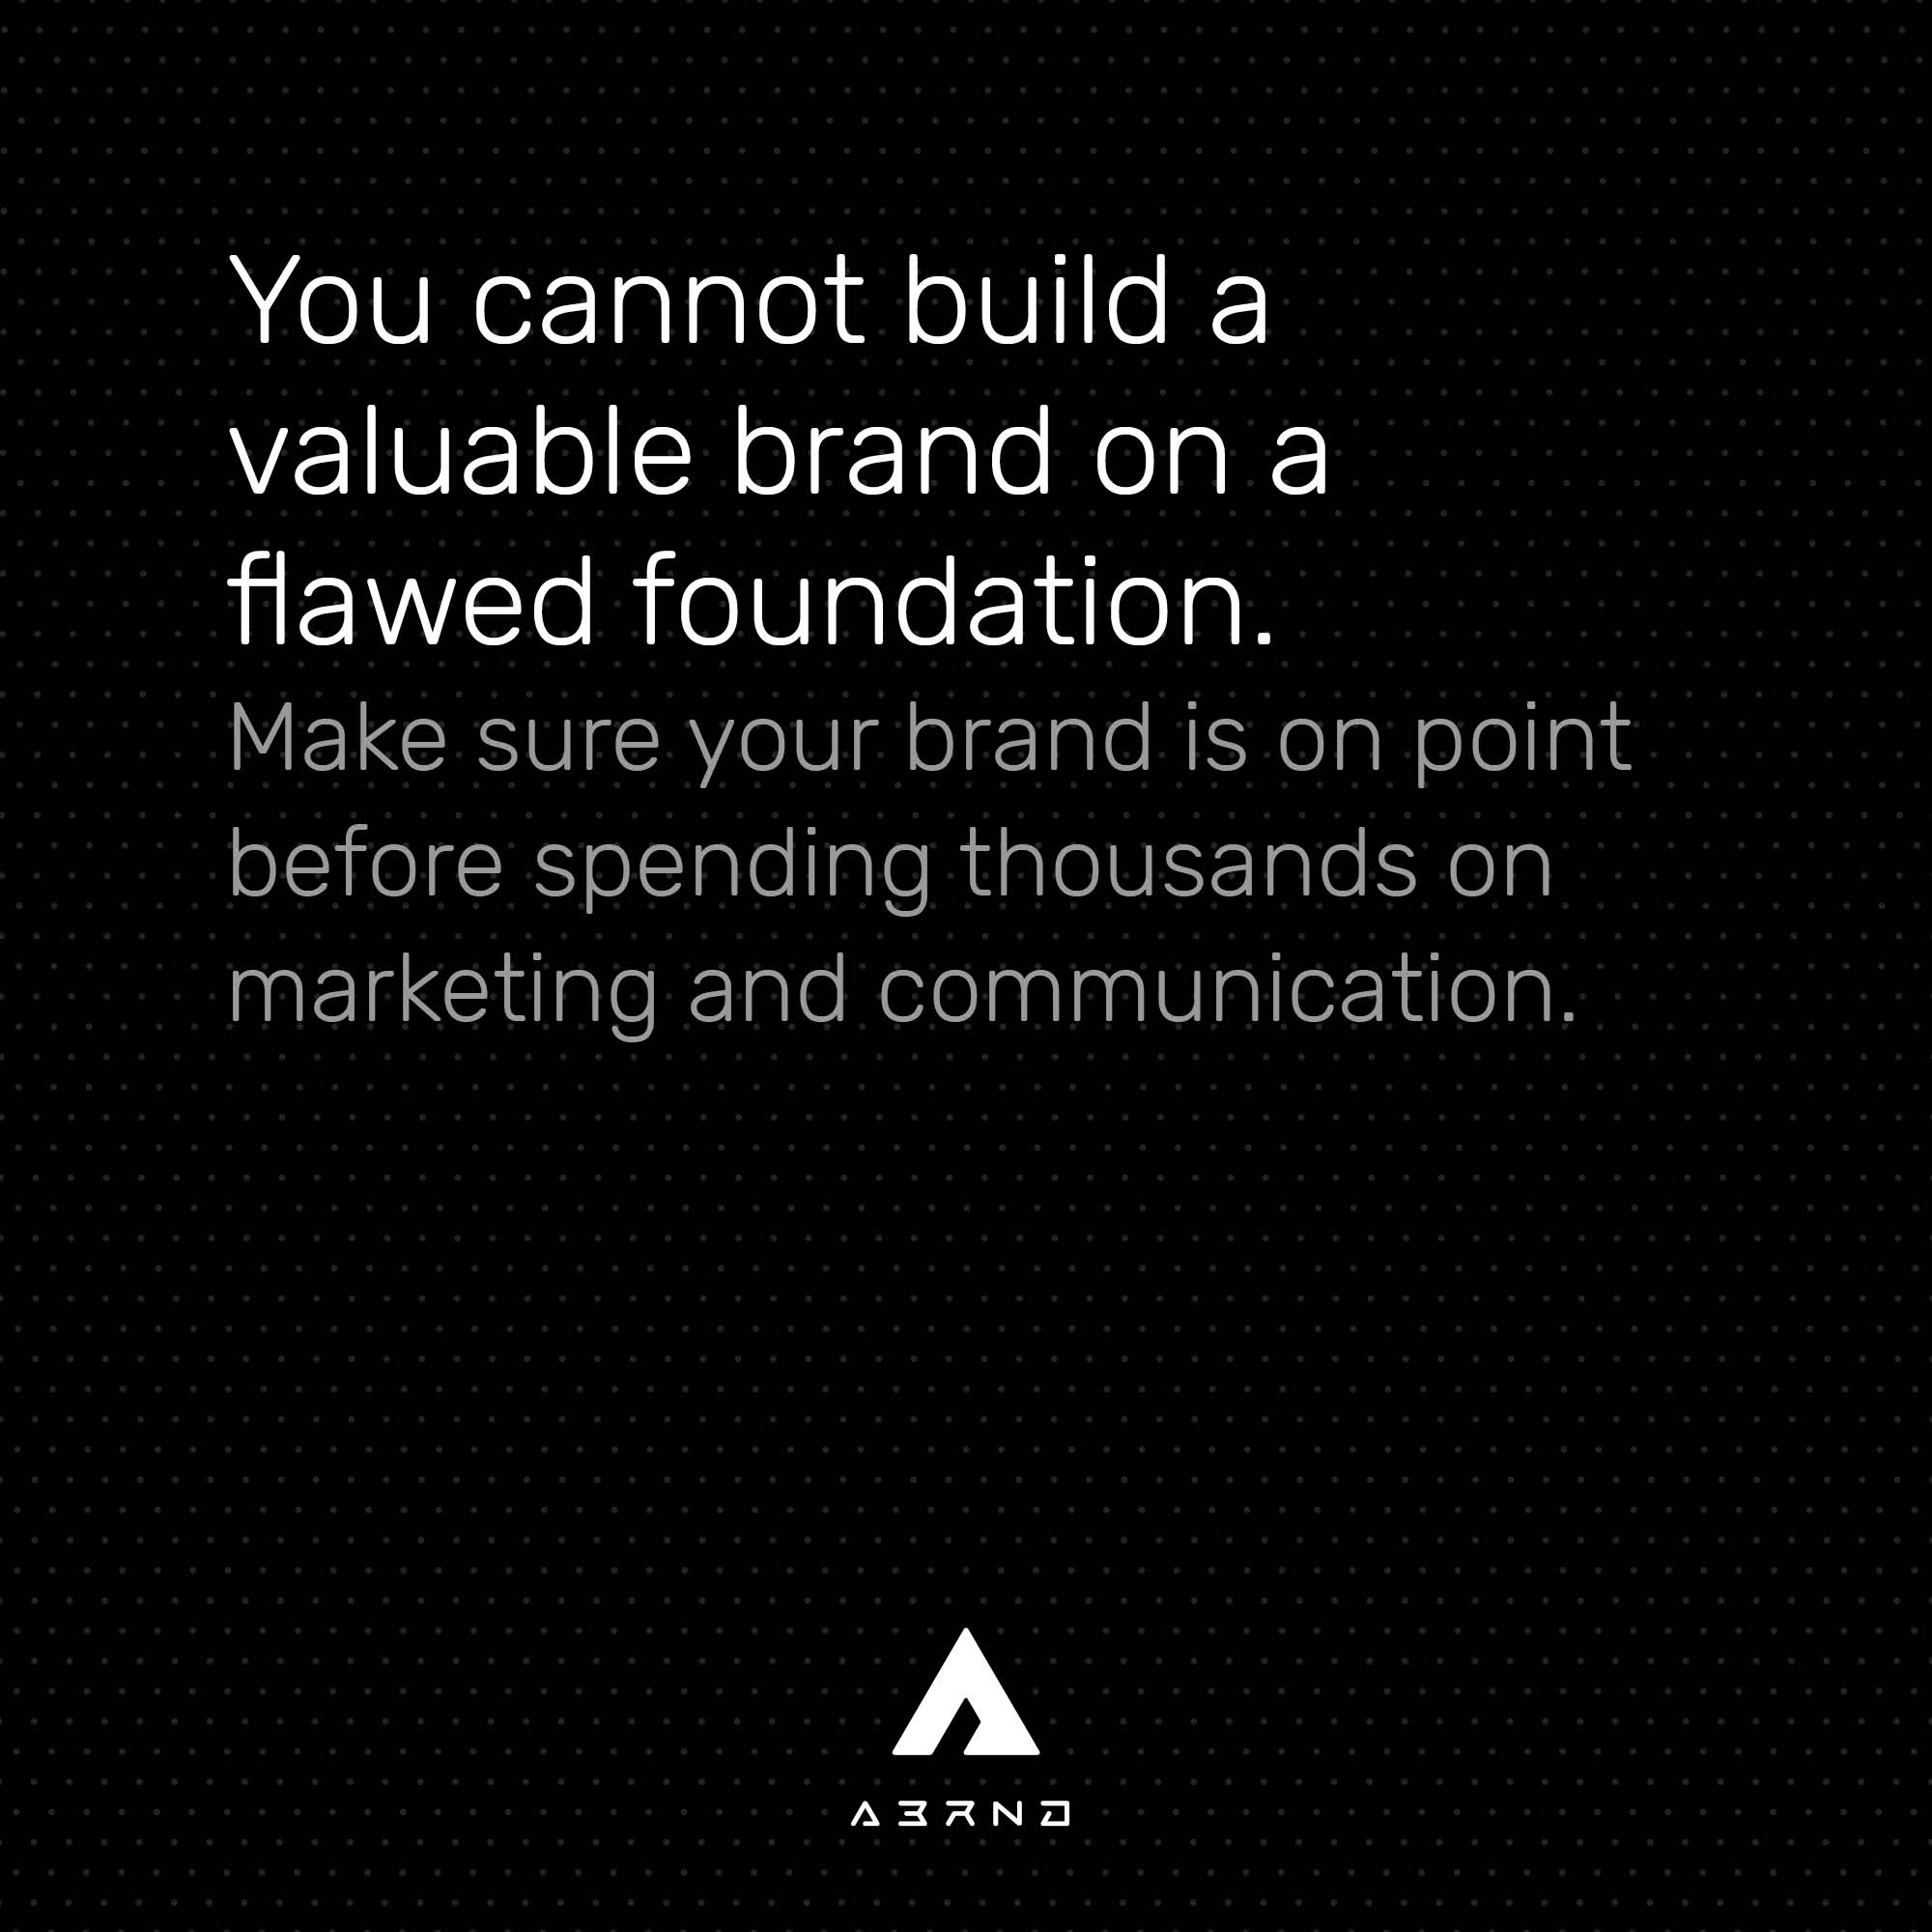 10-01-post-cannot-build-a-valuable-brand-on-a-flawed-foundation-kleiner